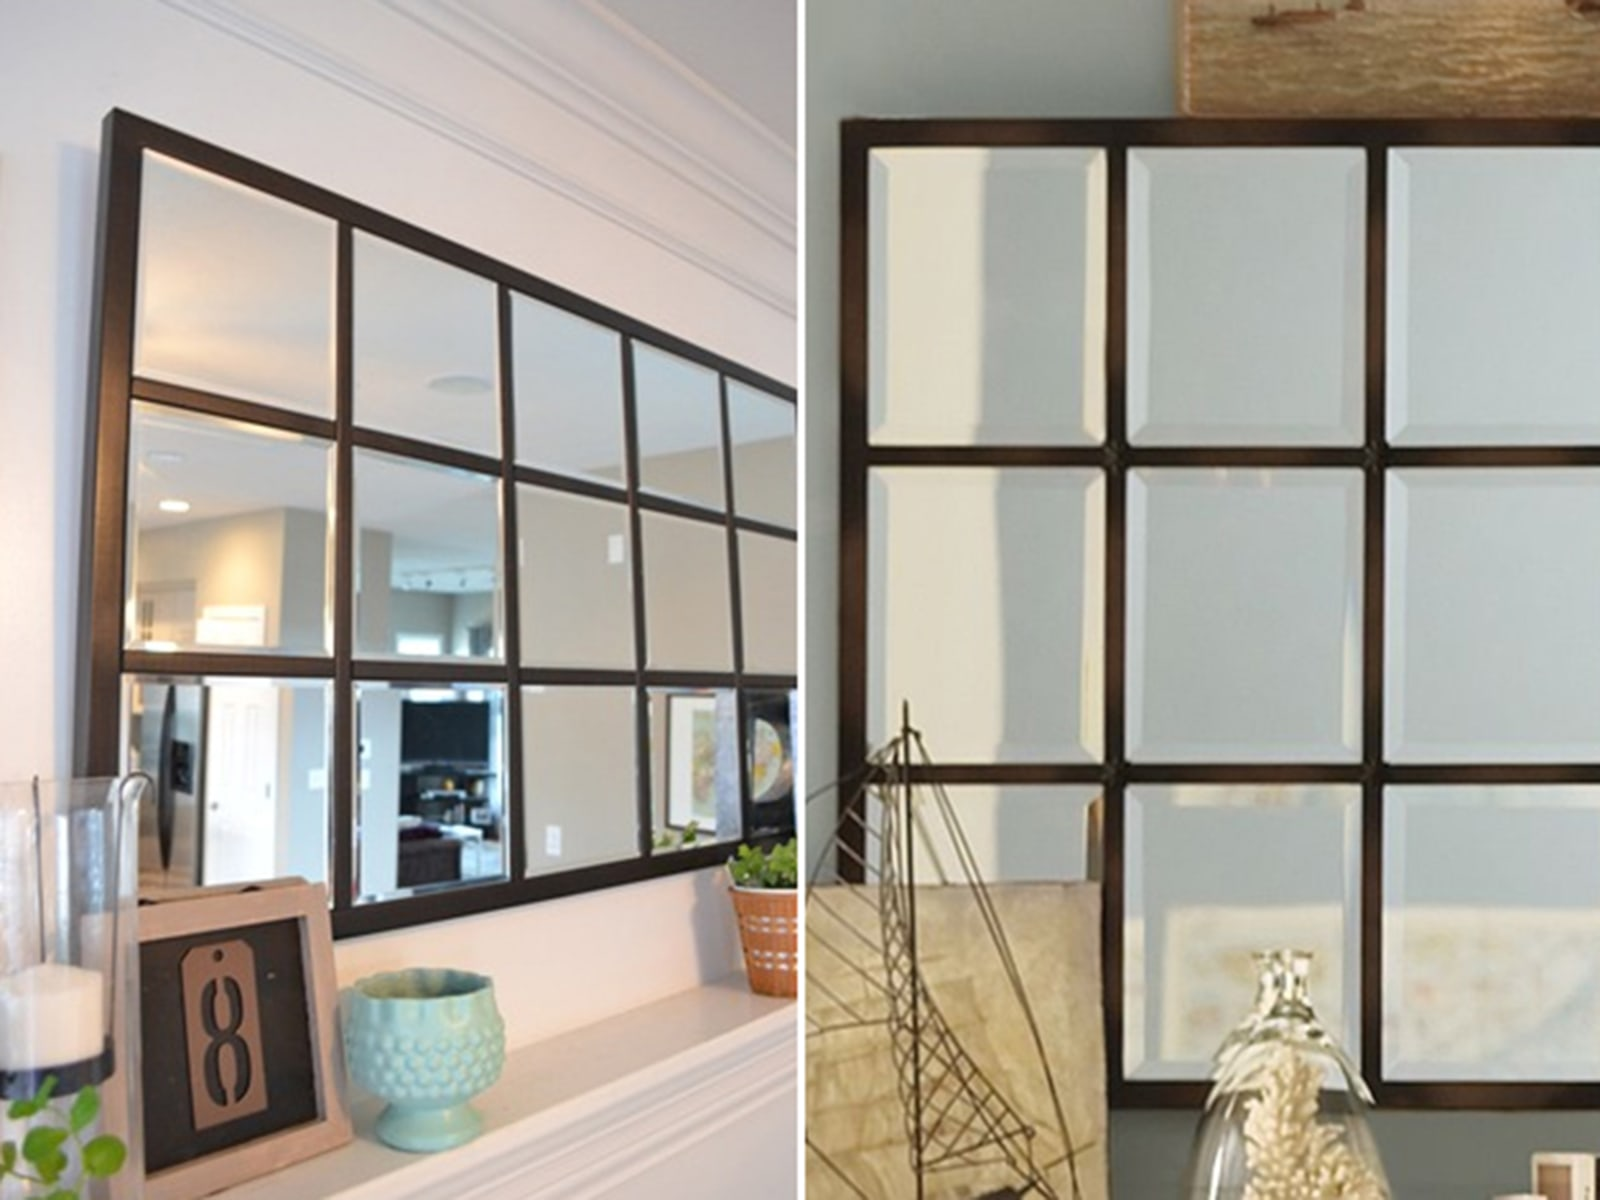 Pottery Barn Mirrored Furniture Pottery Barn Knockoffs Get The Look For Less In Your Home With